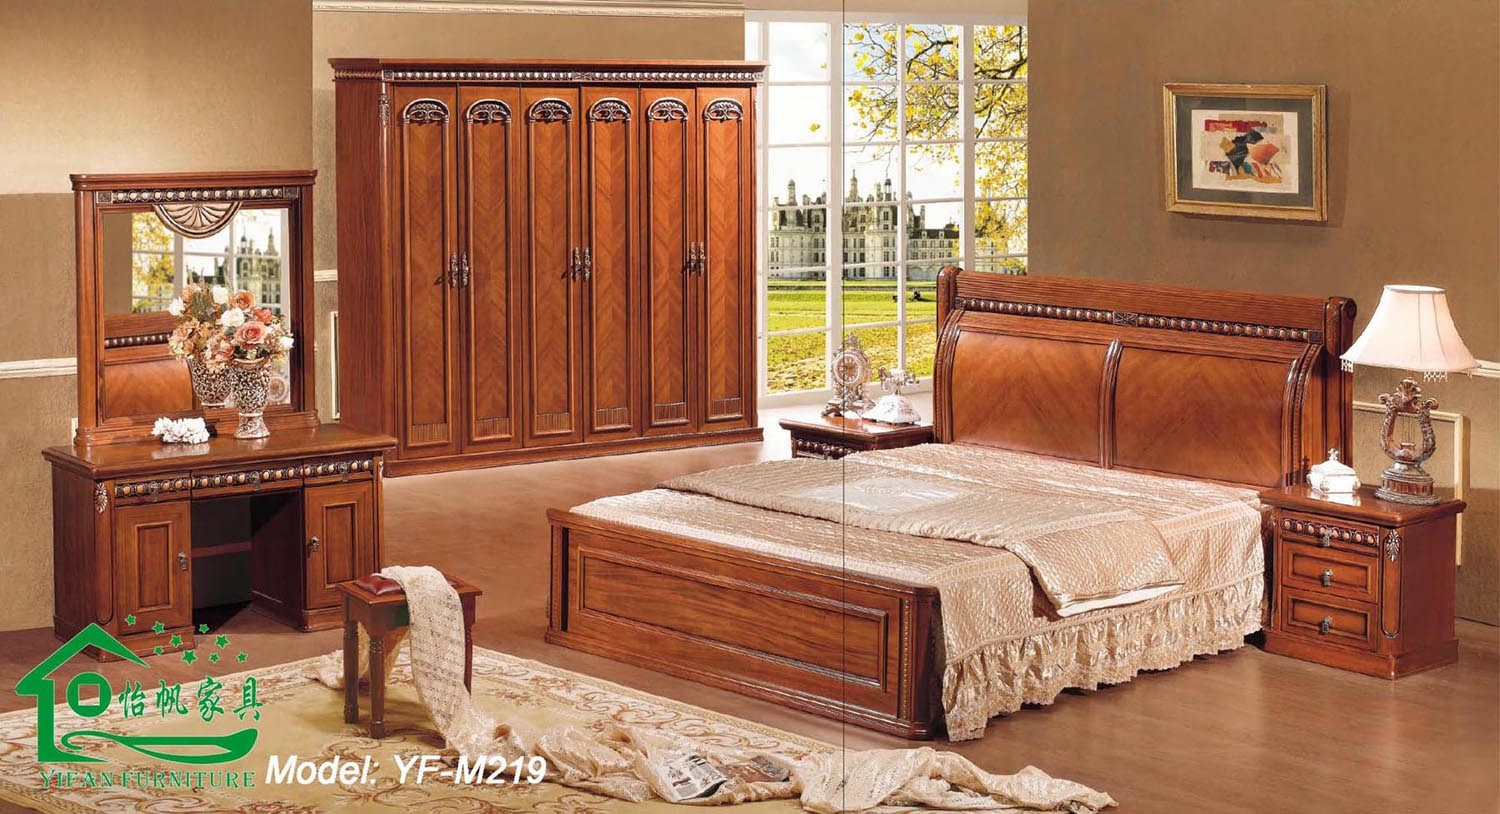 wooden bedroom furniture with 80 inch length wood bed yf m219